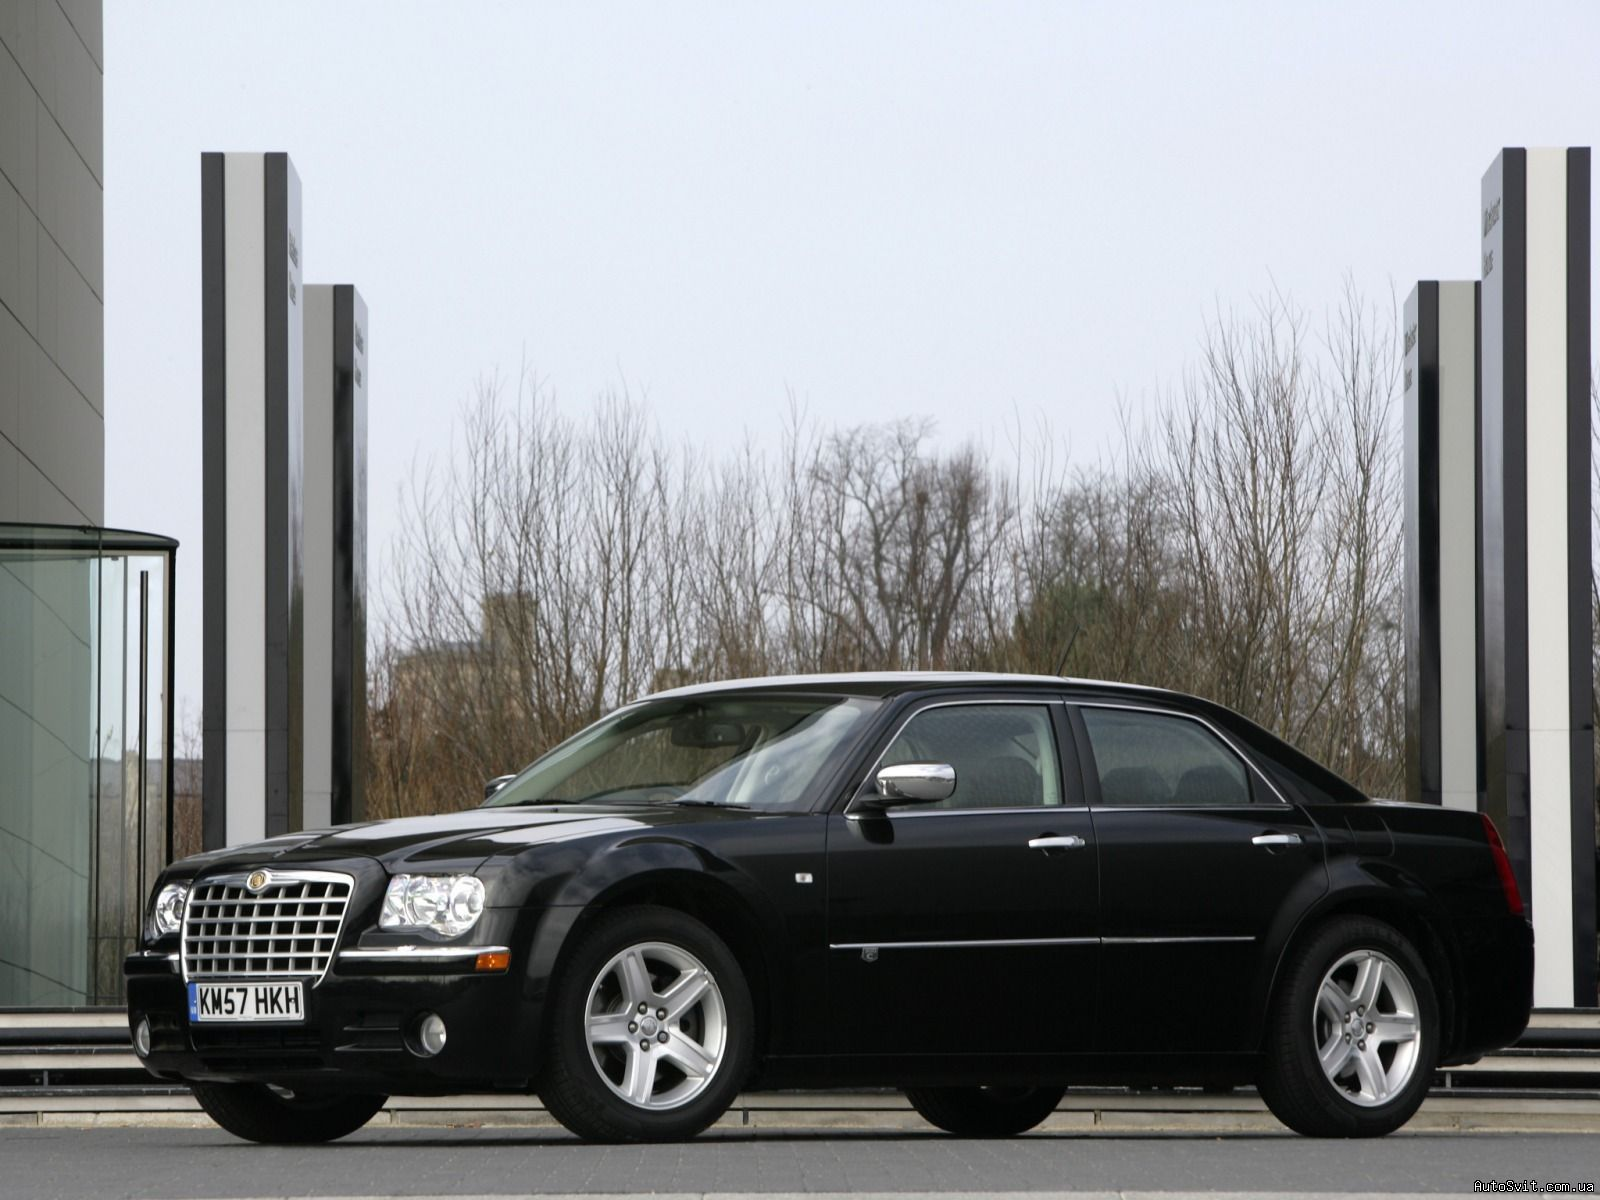 Руководство по ремонту и эксплуатации Крайслер 300С (Chrysler 300C)